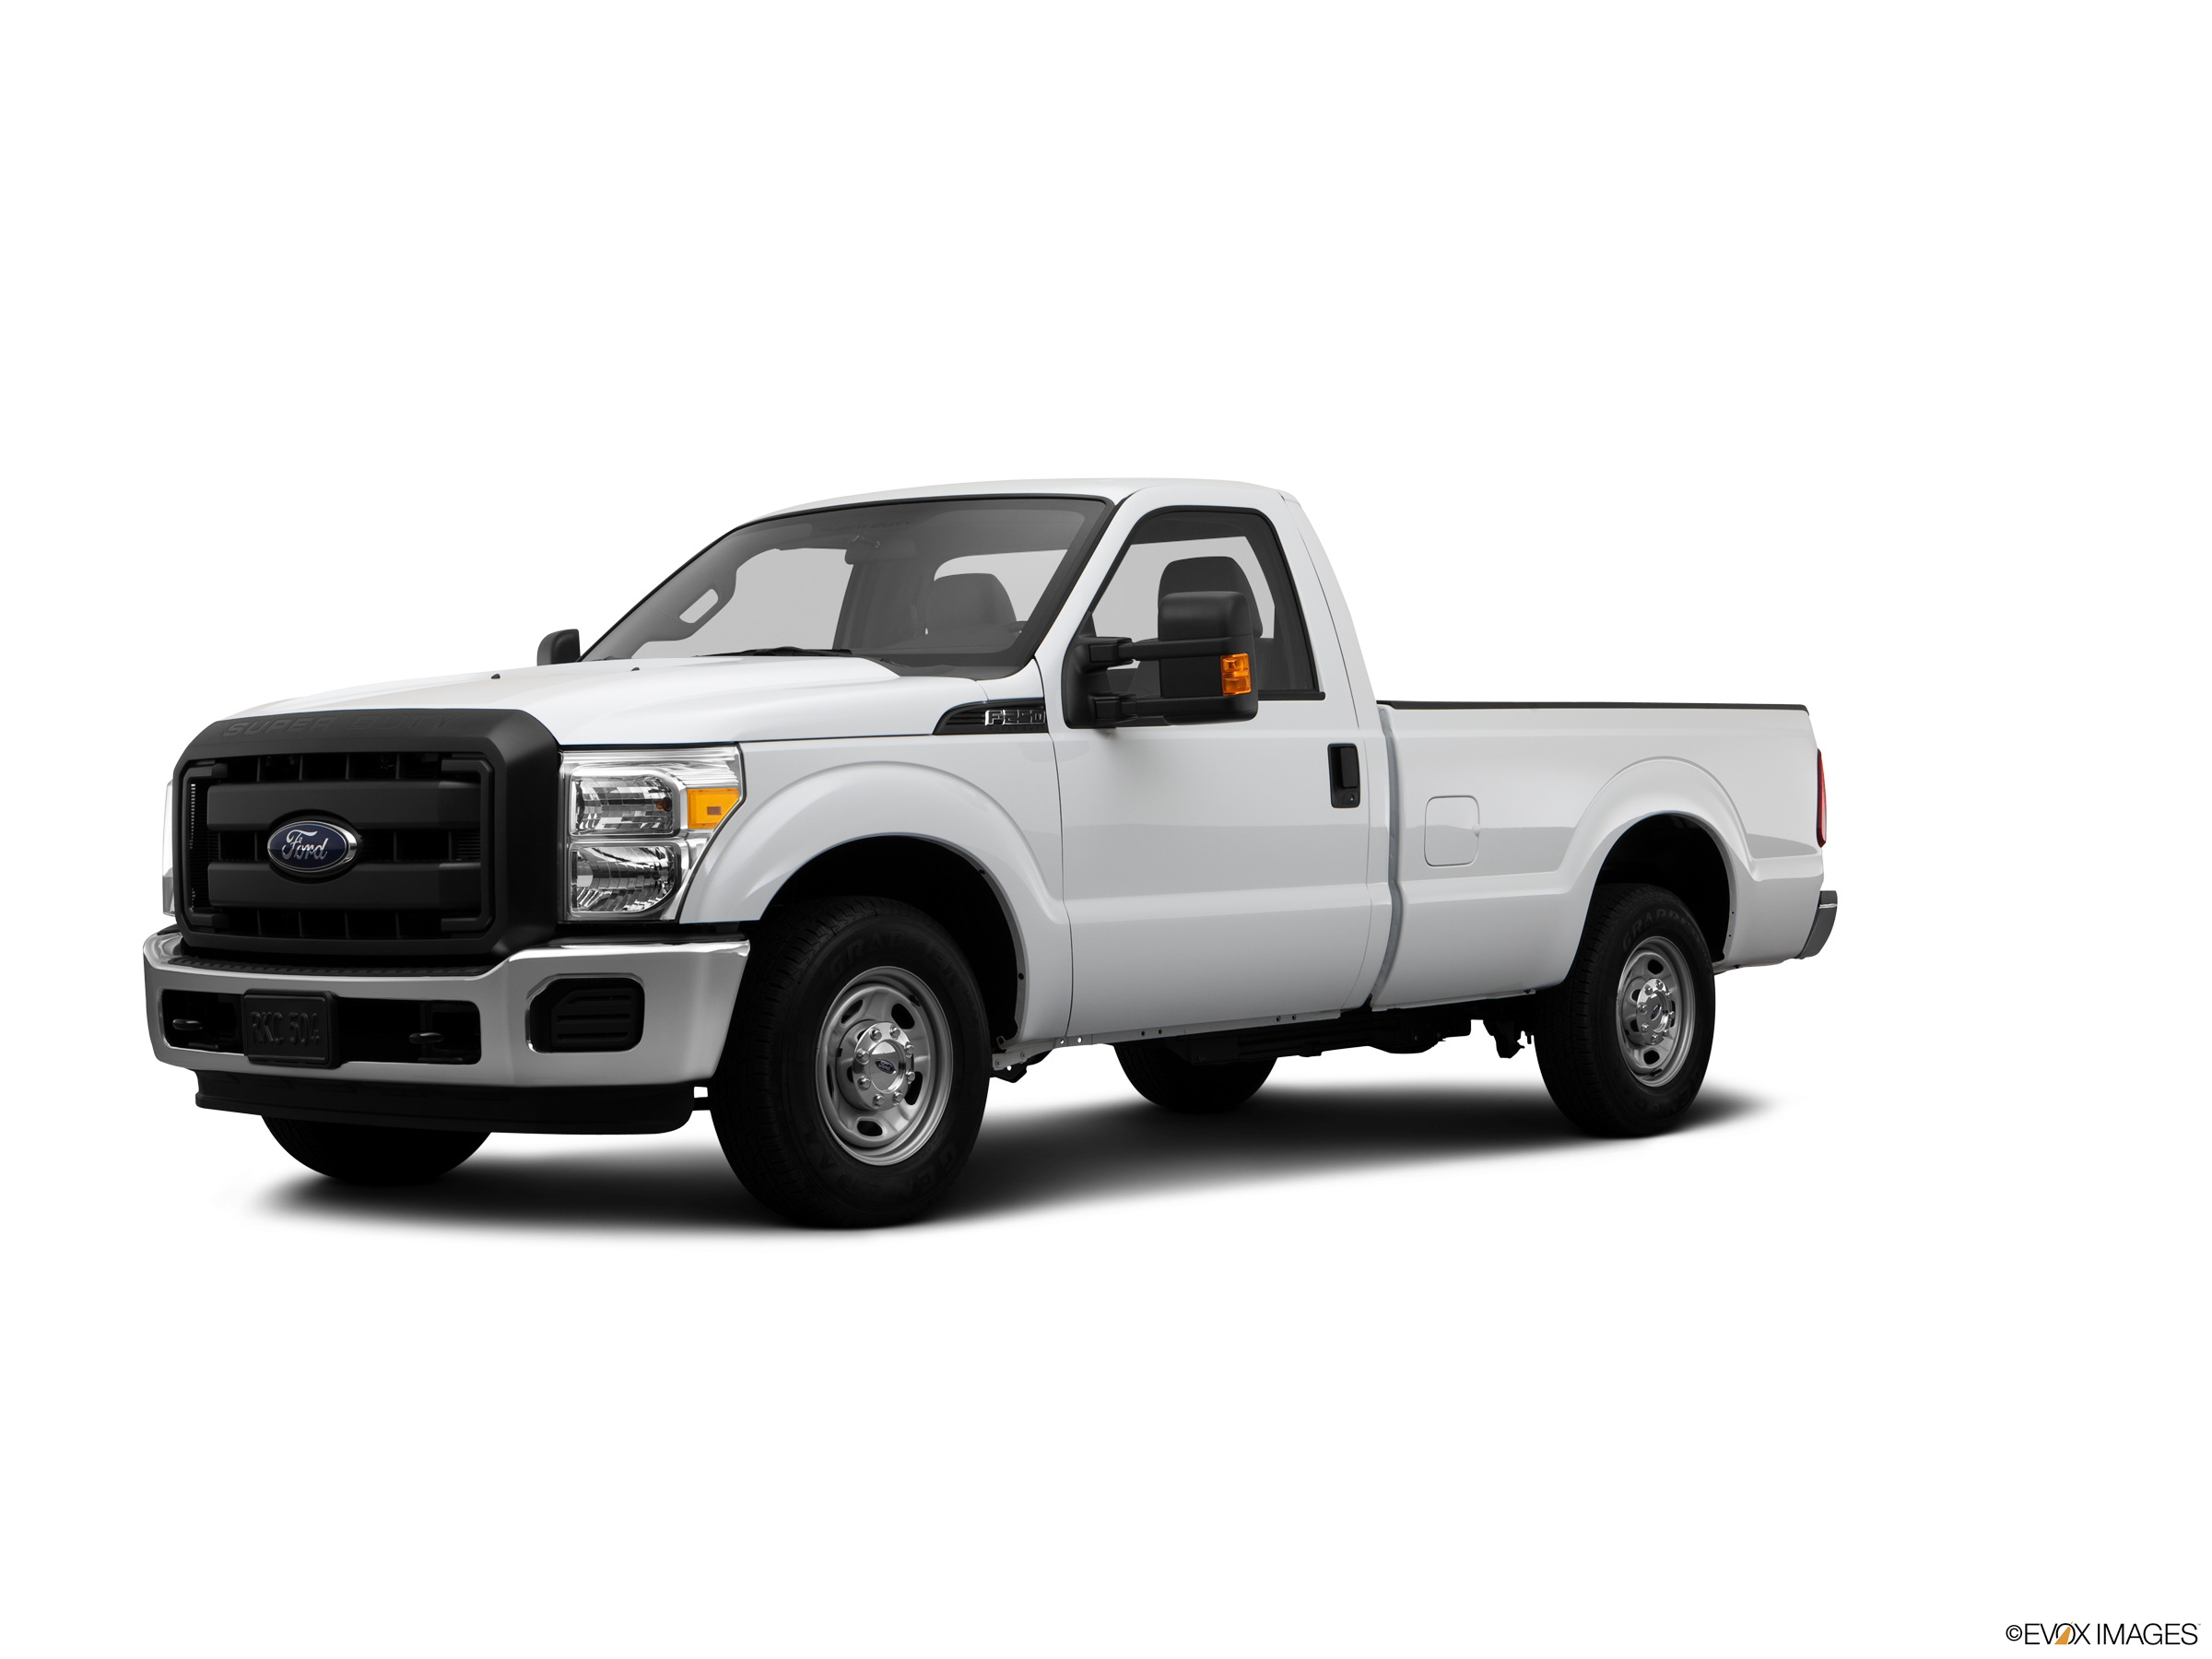 2015 Ford F350 Values & Cars for Sale | Kelley Blue Book | 2015 Ford F350 Super Duty Truck Uper Wiring Harness |  | Kelley Blue Book